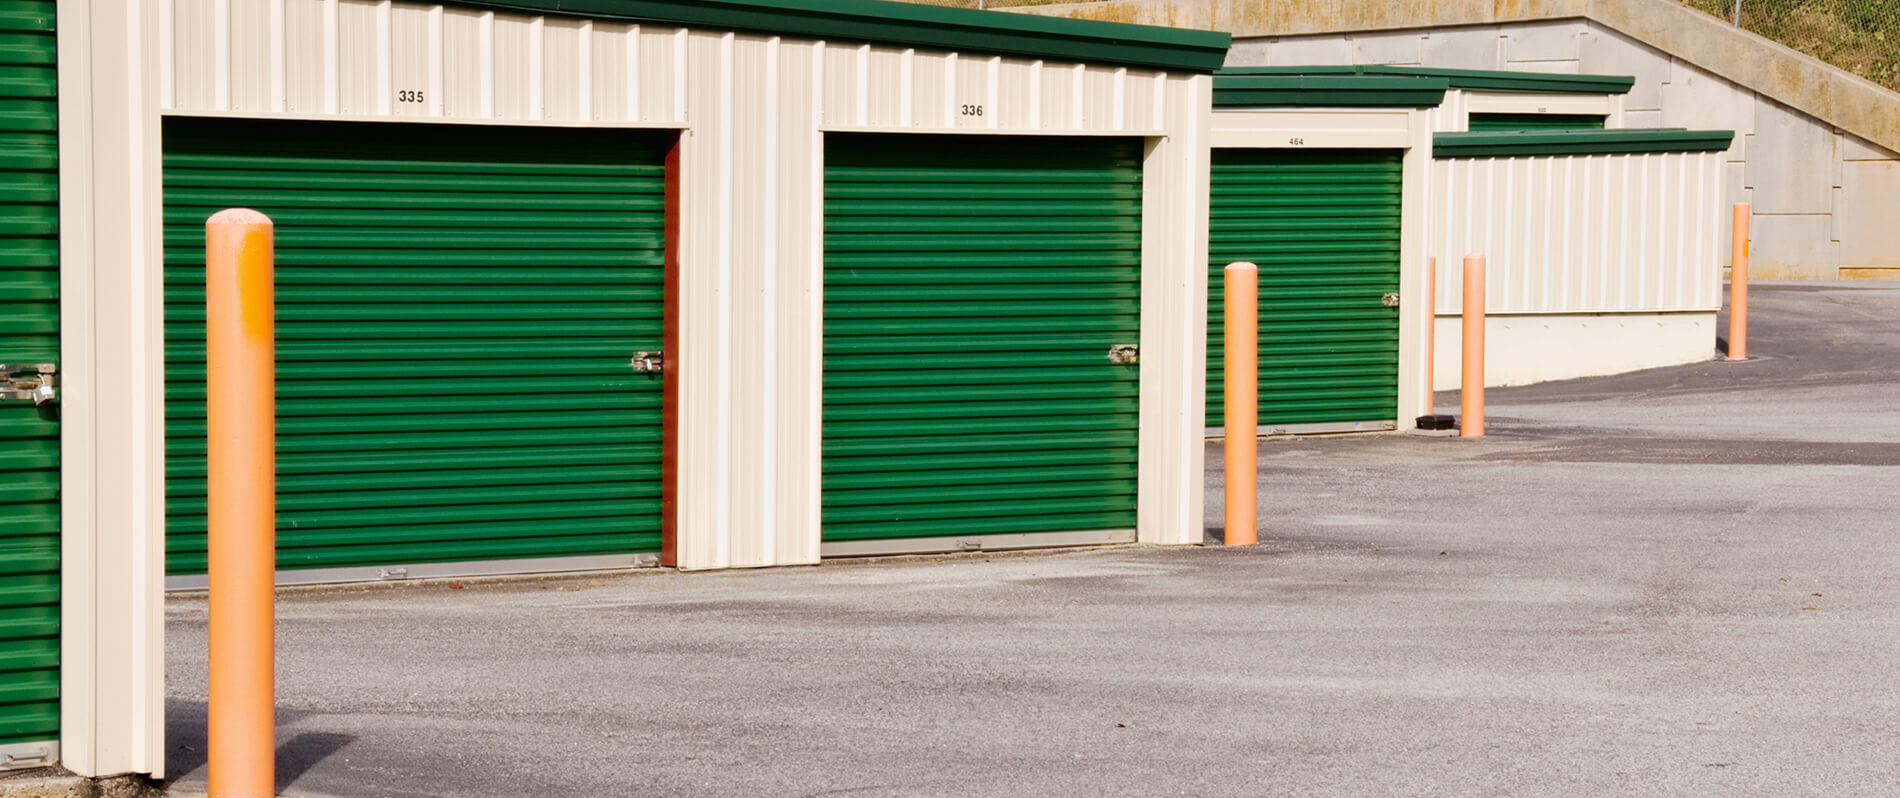 Storage Units in Shelby Township, MI 2